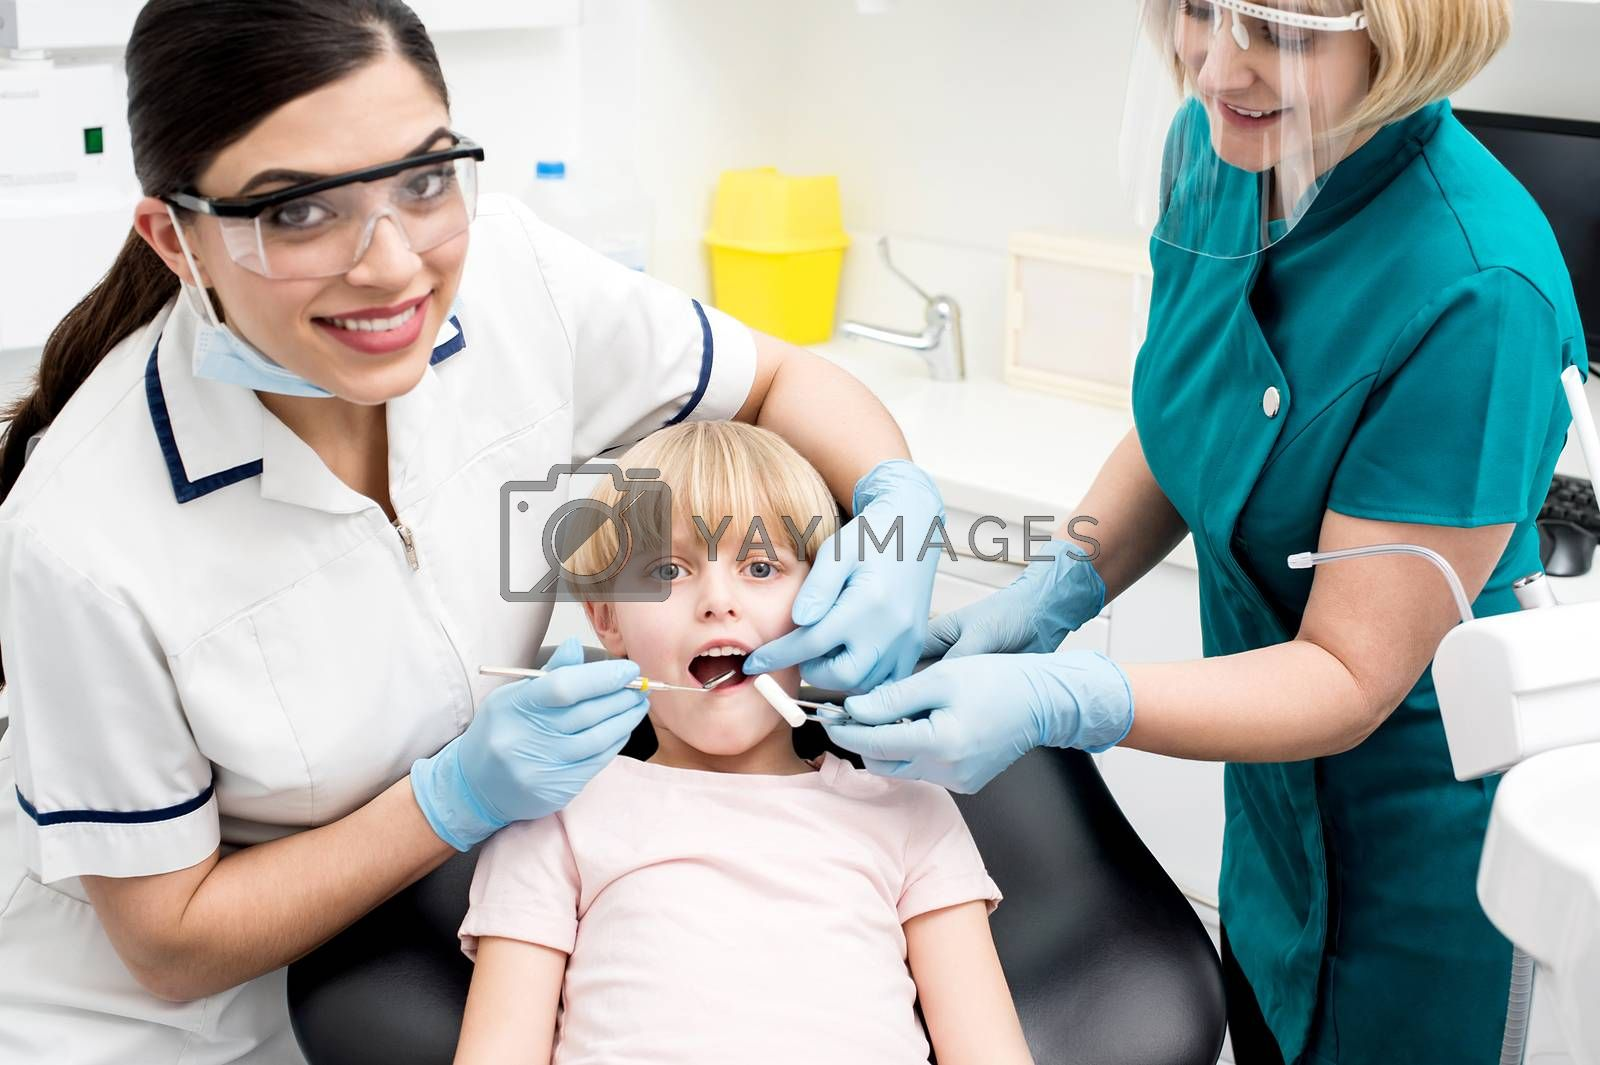 Dentist and nurse are curing a little girl patient